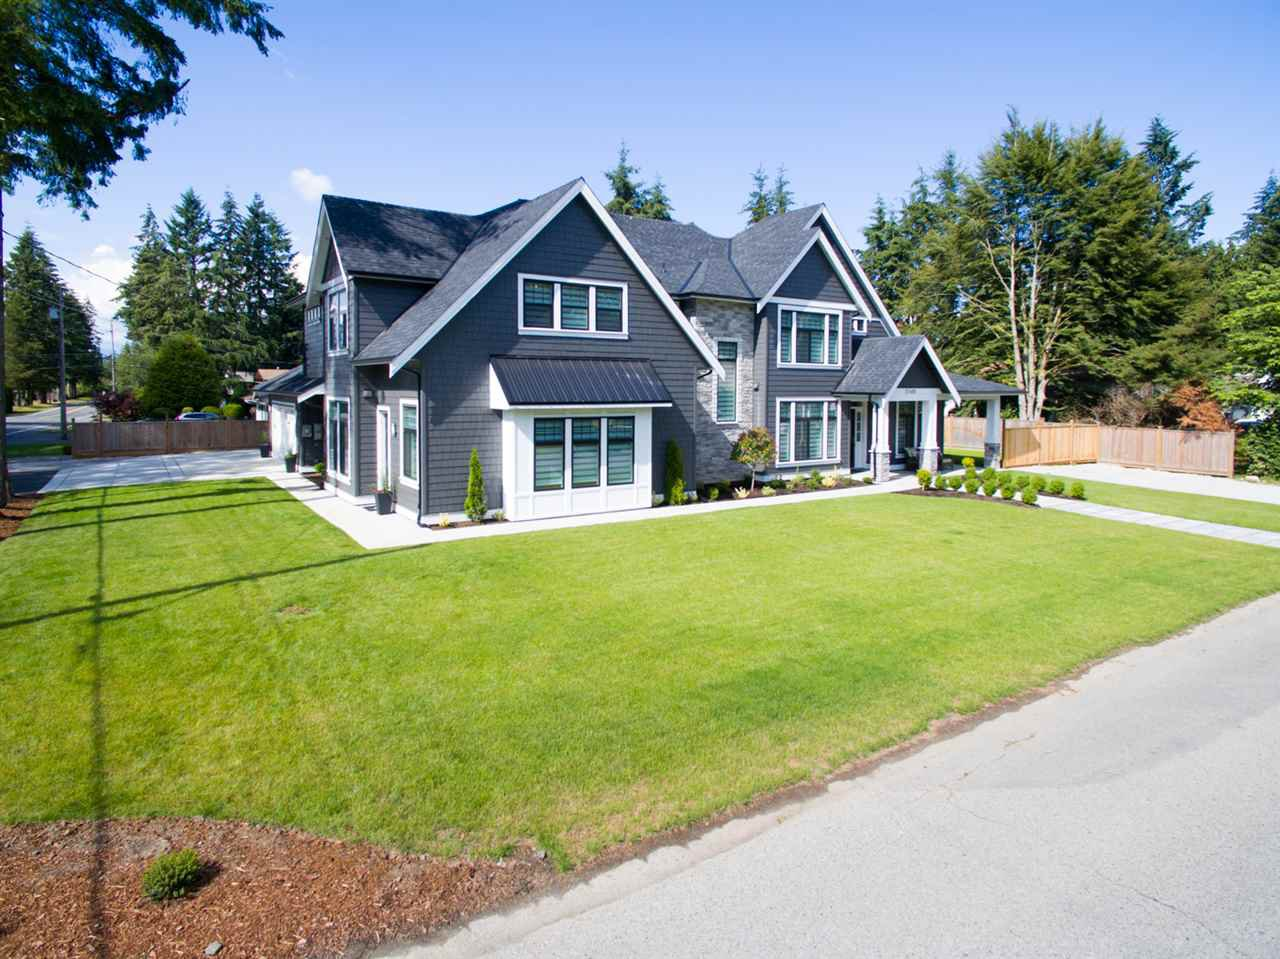 Main Photo: 20419 42A Avenue in Langley: Brookswood Langley House for sale : MLS®# R2082094